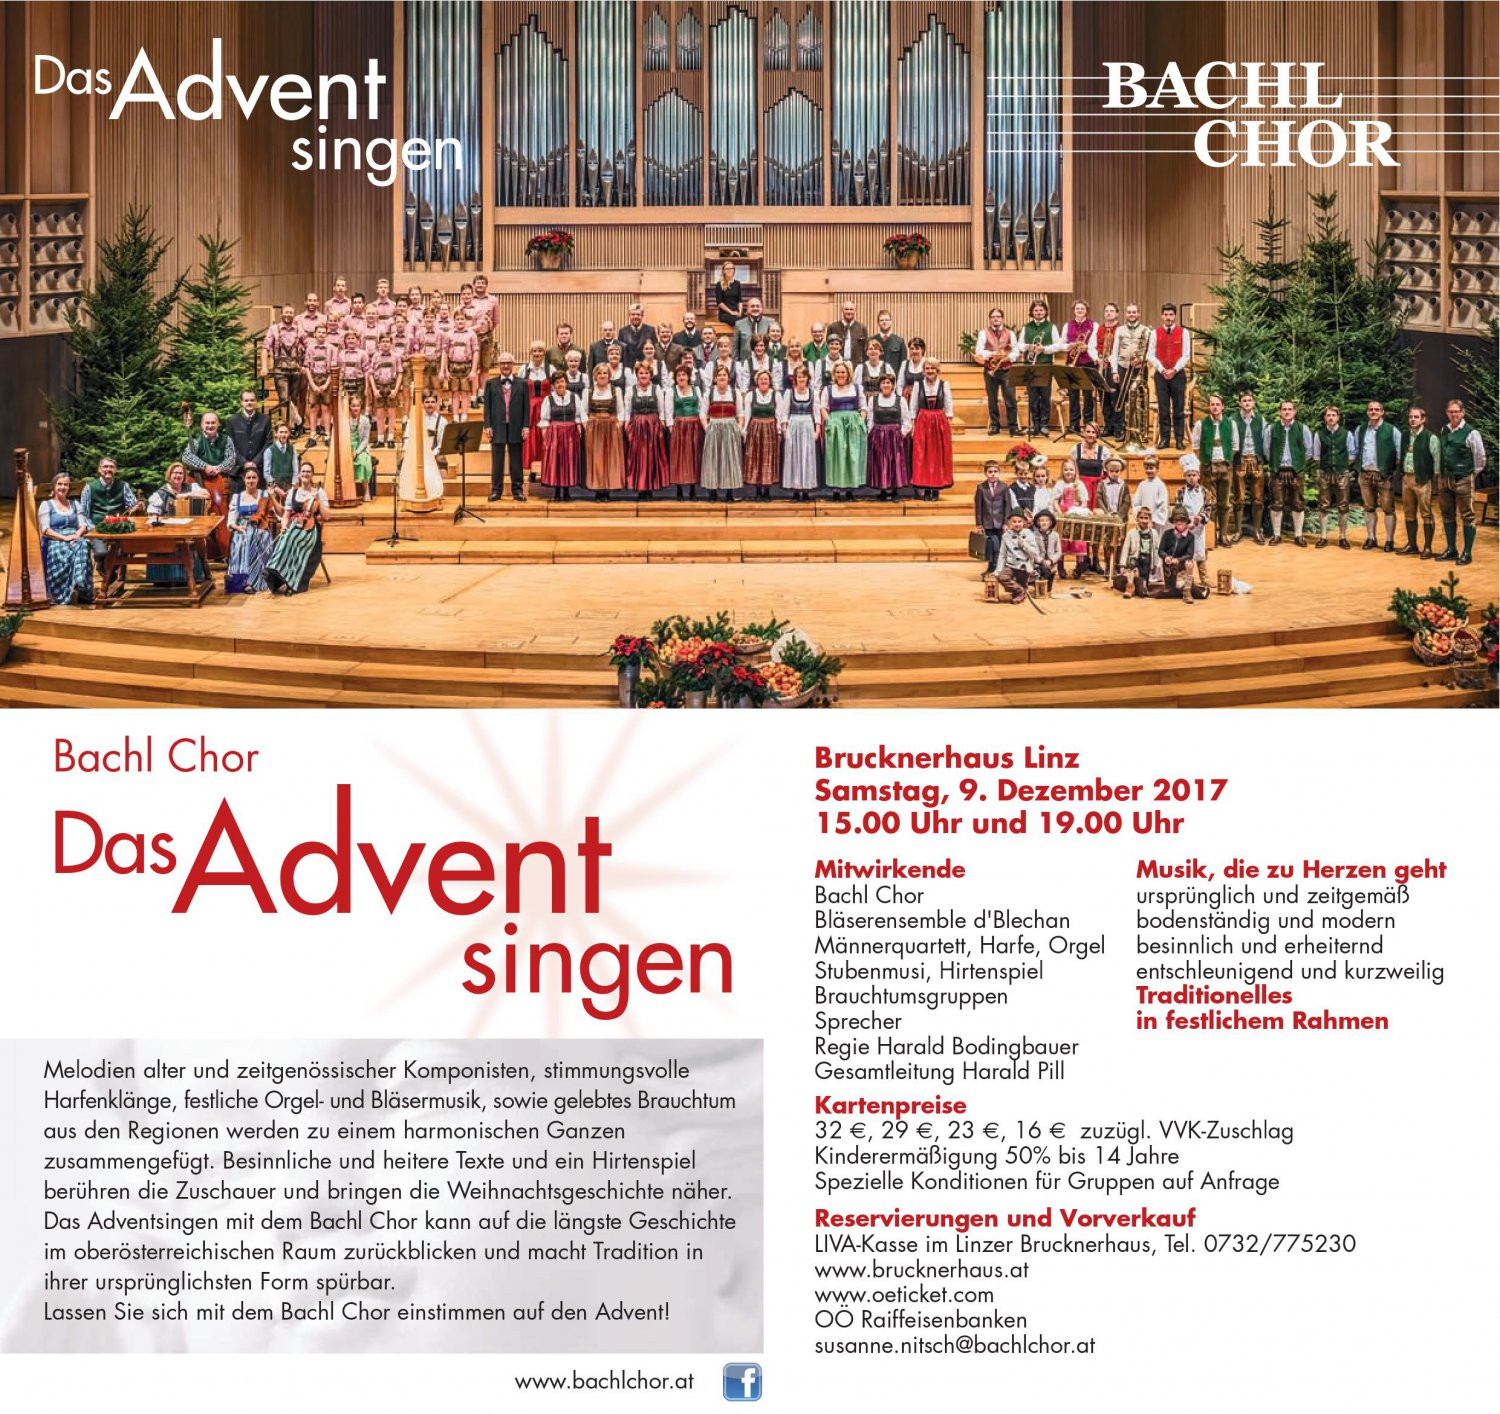 2017 - Das Adventsingen